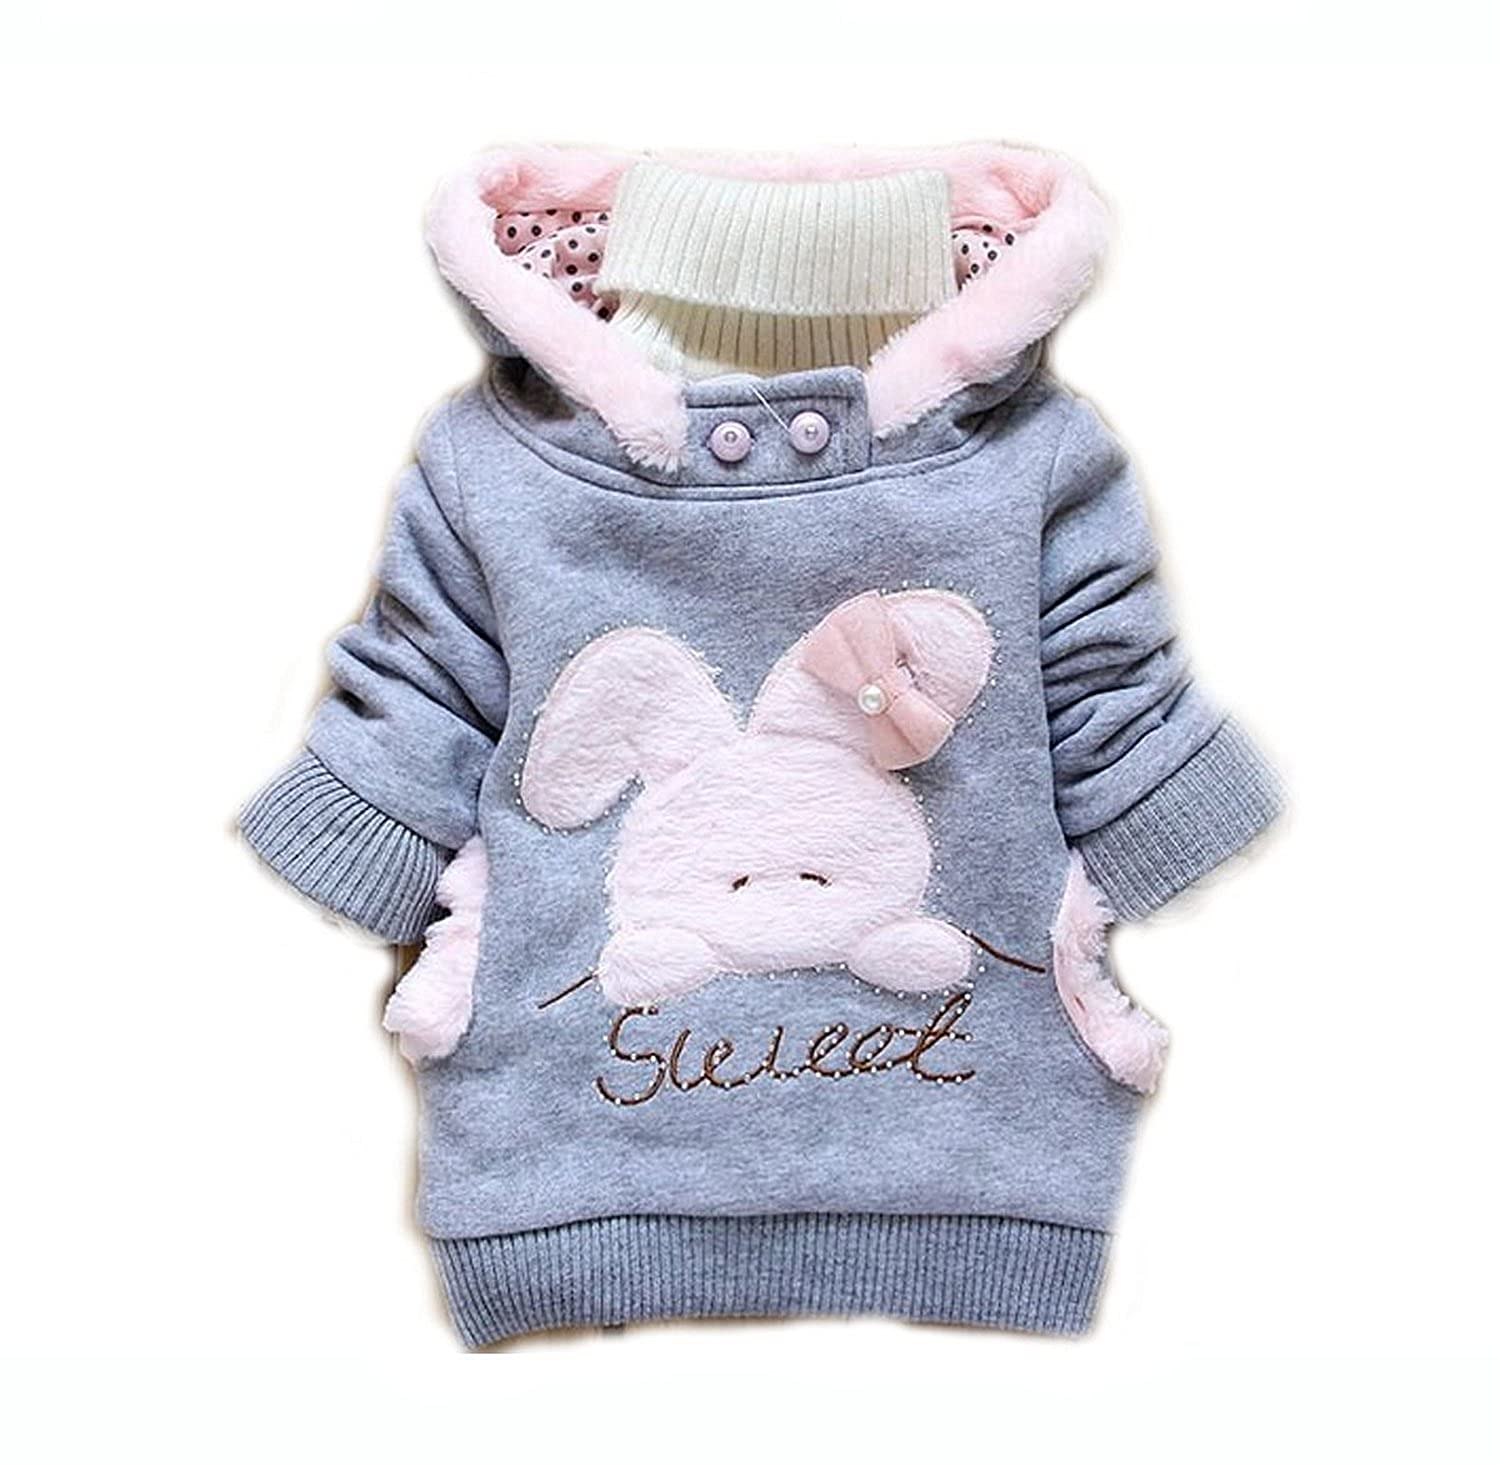 8a65b6a05 Amazon.com  Baby Girls Cute Rabbit Fall Winter Hoodie Jacket ...